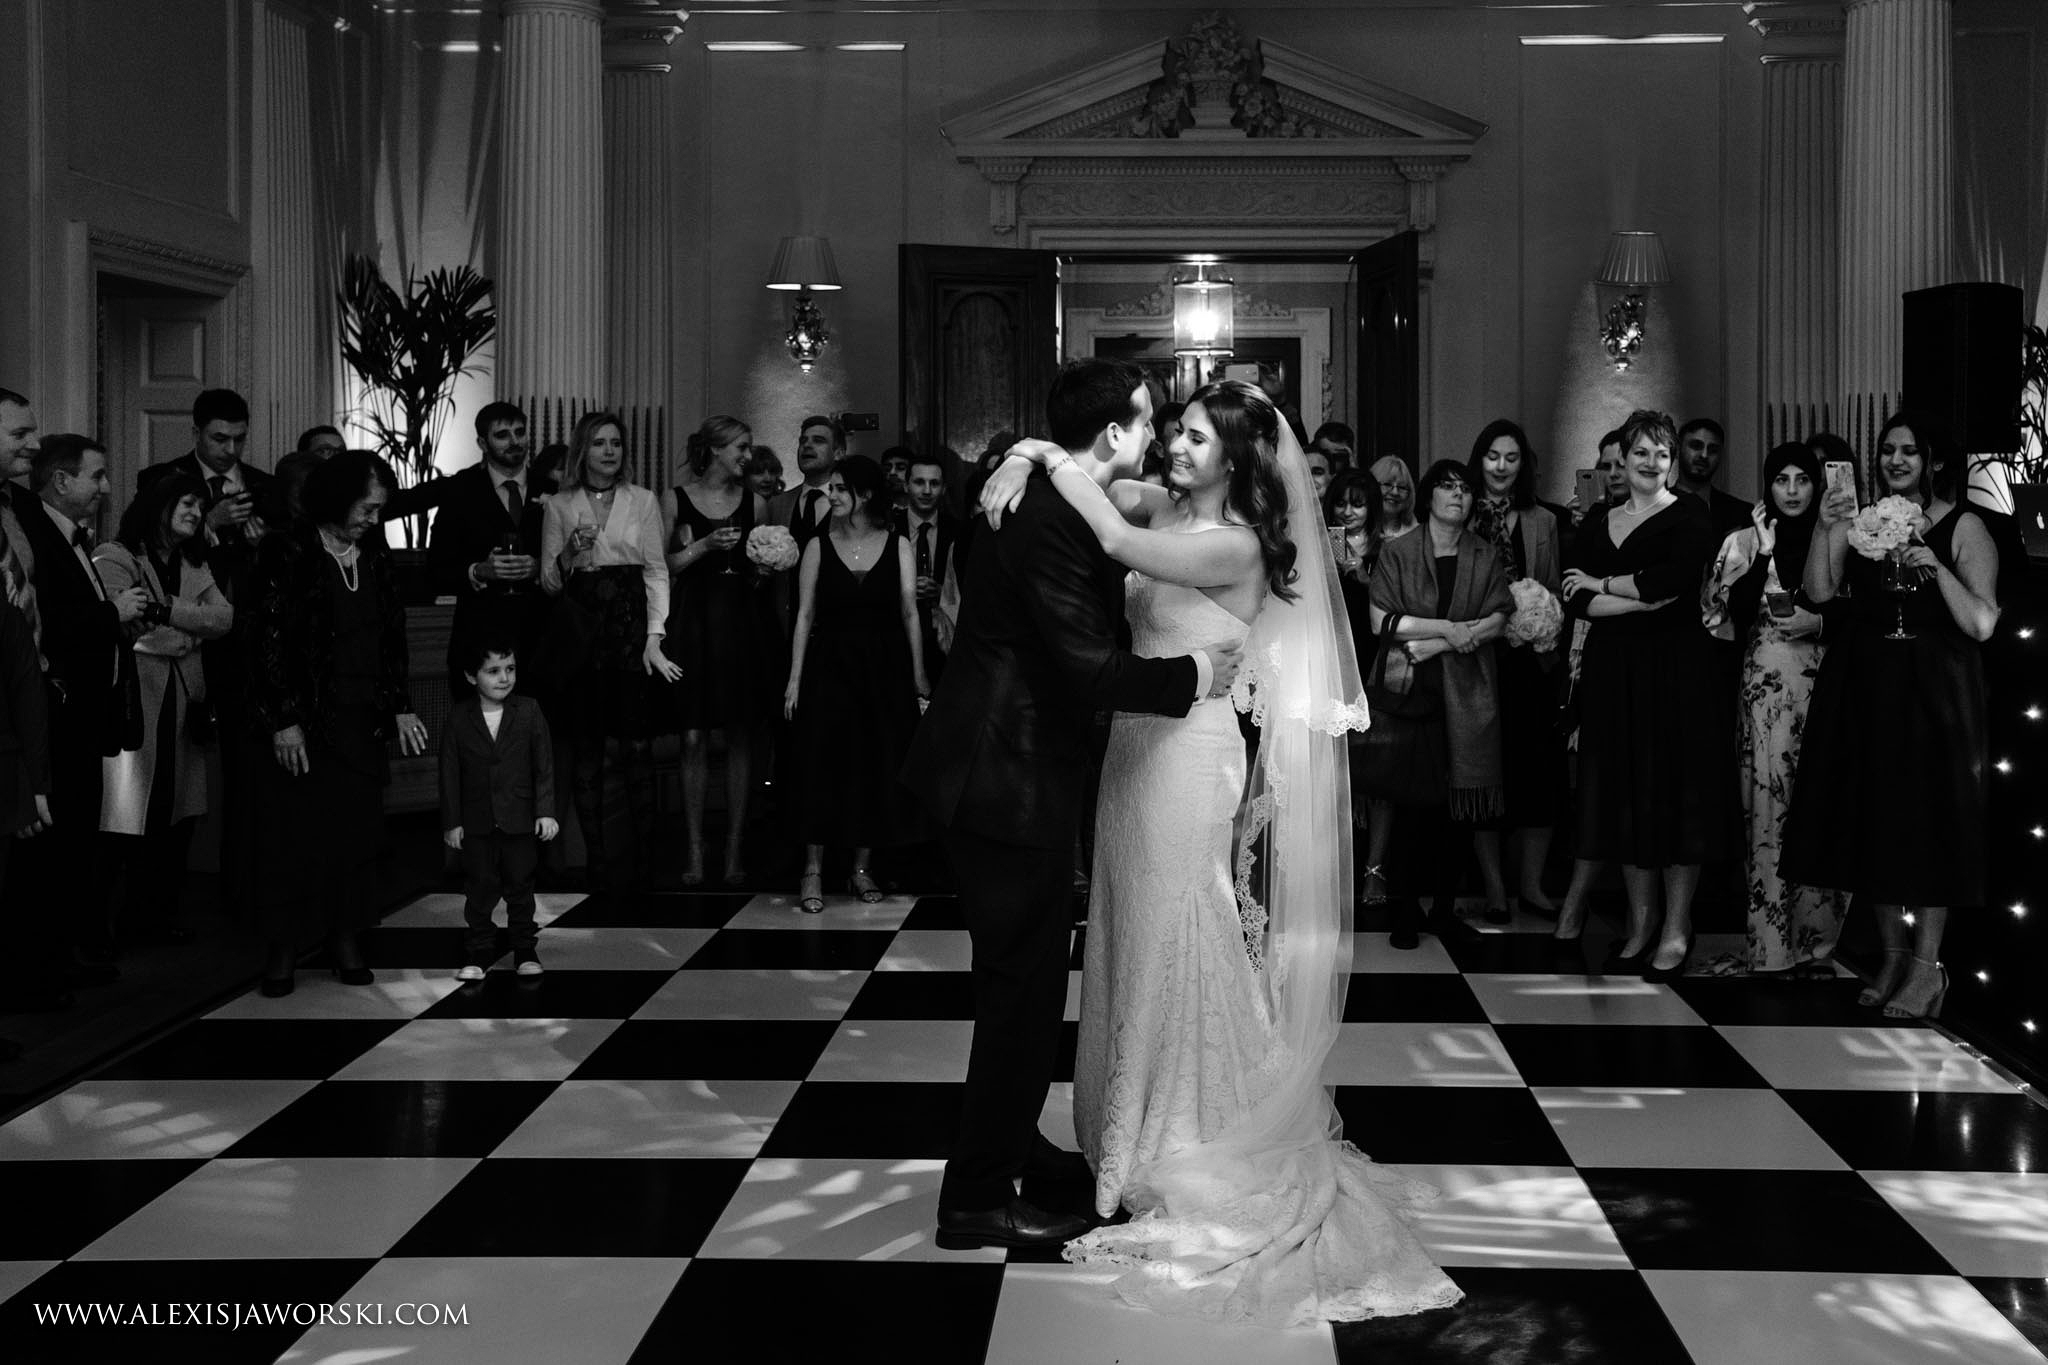 bride and groom dancing in black and white